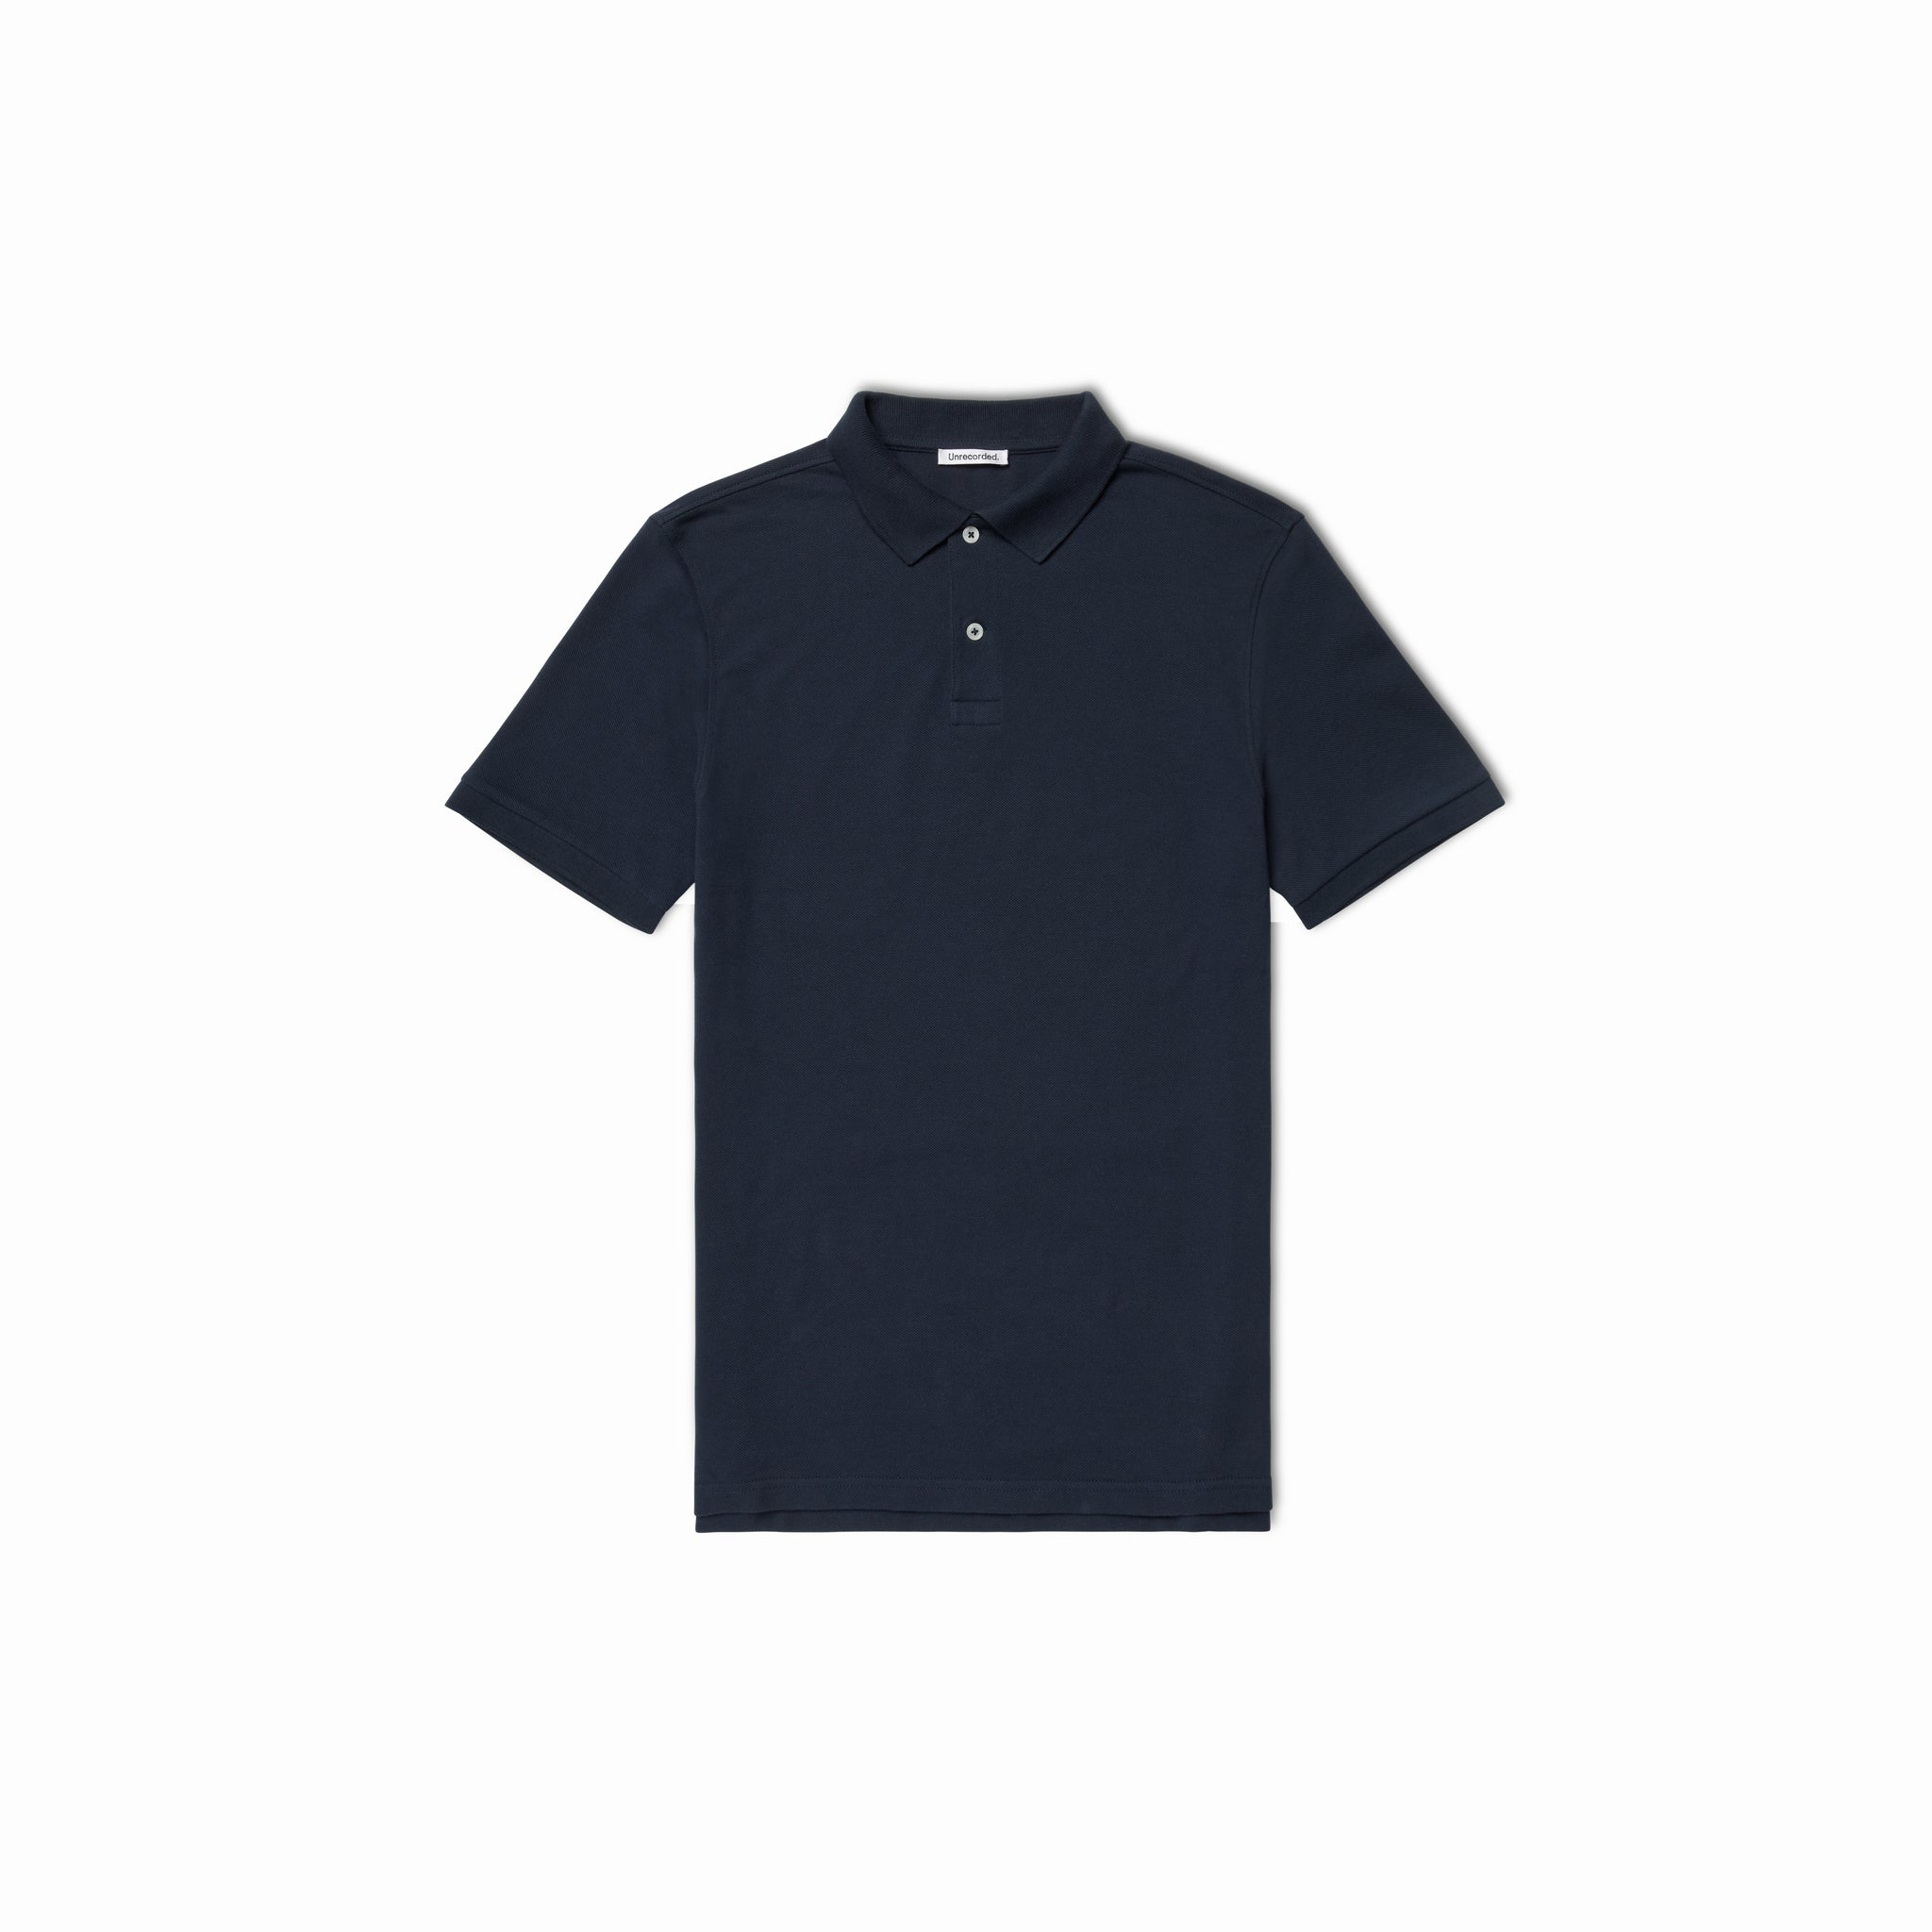 Pique Polo Navy from Unrecorded